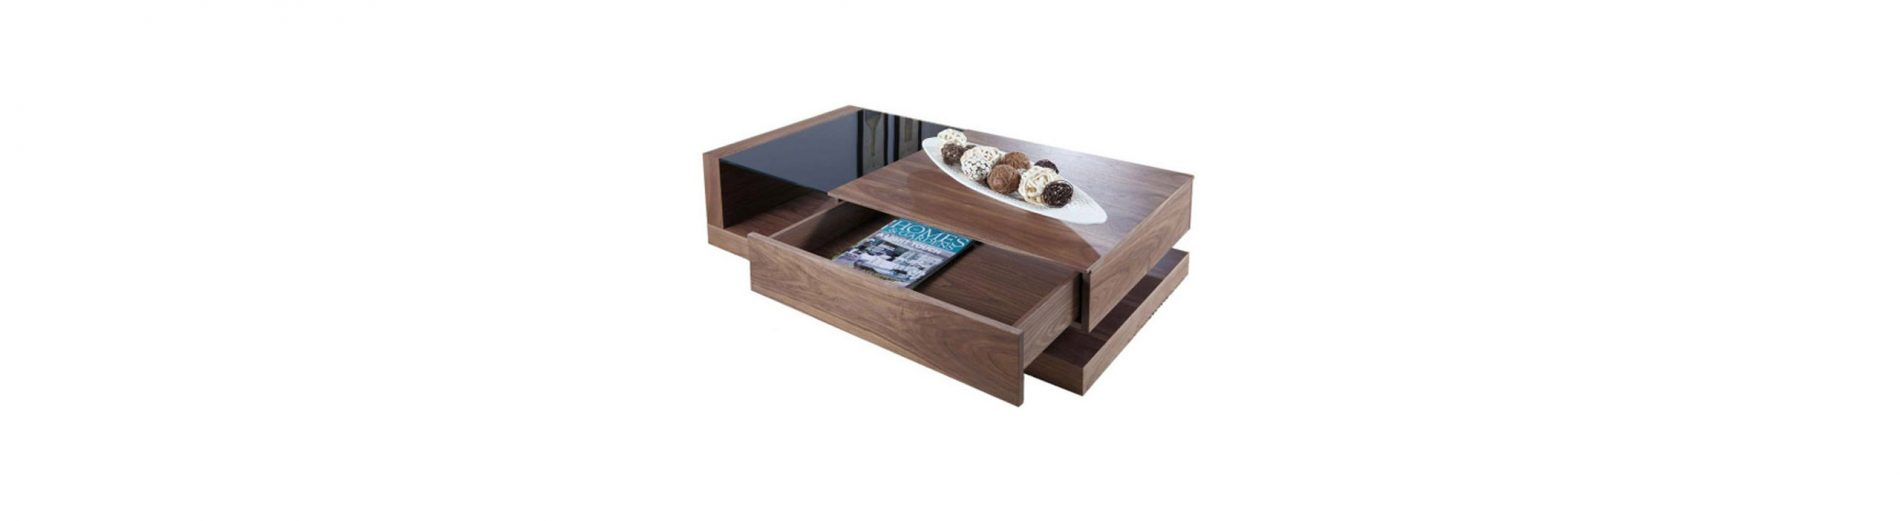 10 Of The Best Wood And Glass Coffee Tables From Furniture in Fashion